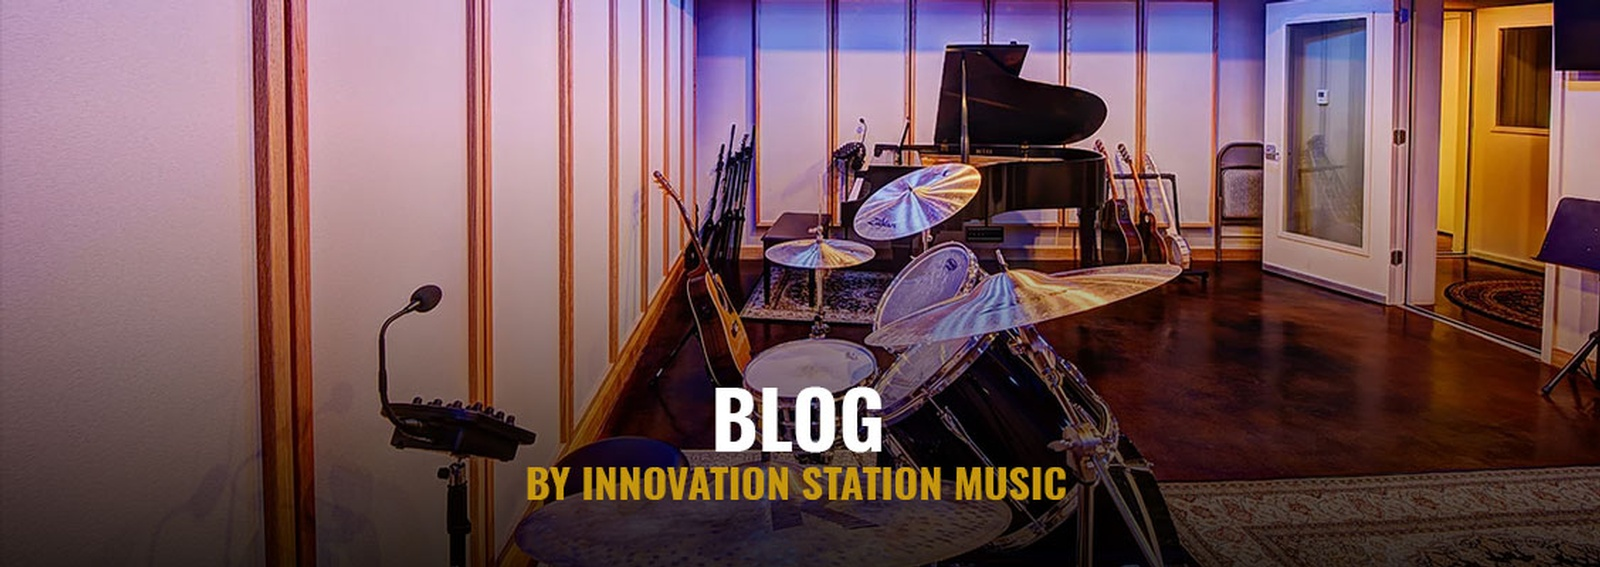 Blog by Innovation Station Music